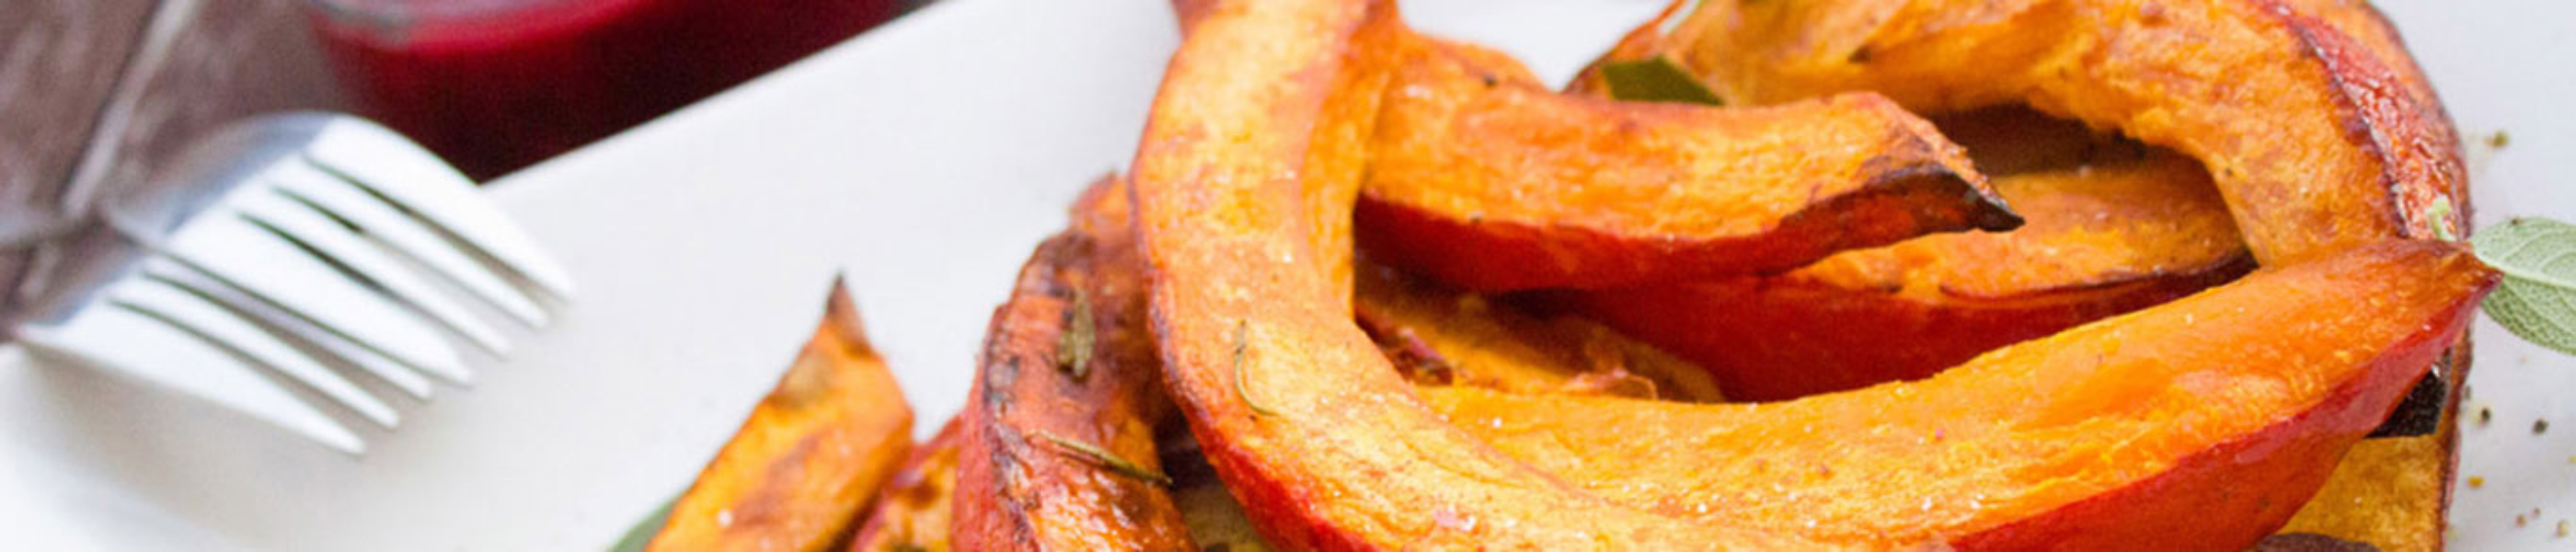 roasted-gourd-banner-1-2800x600_c